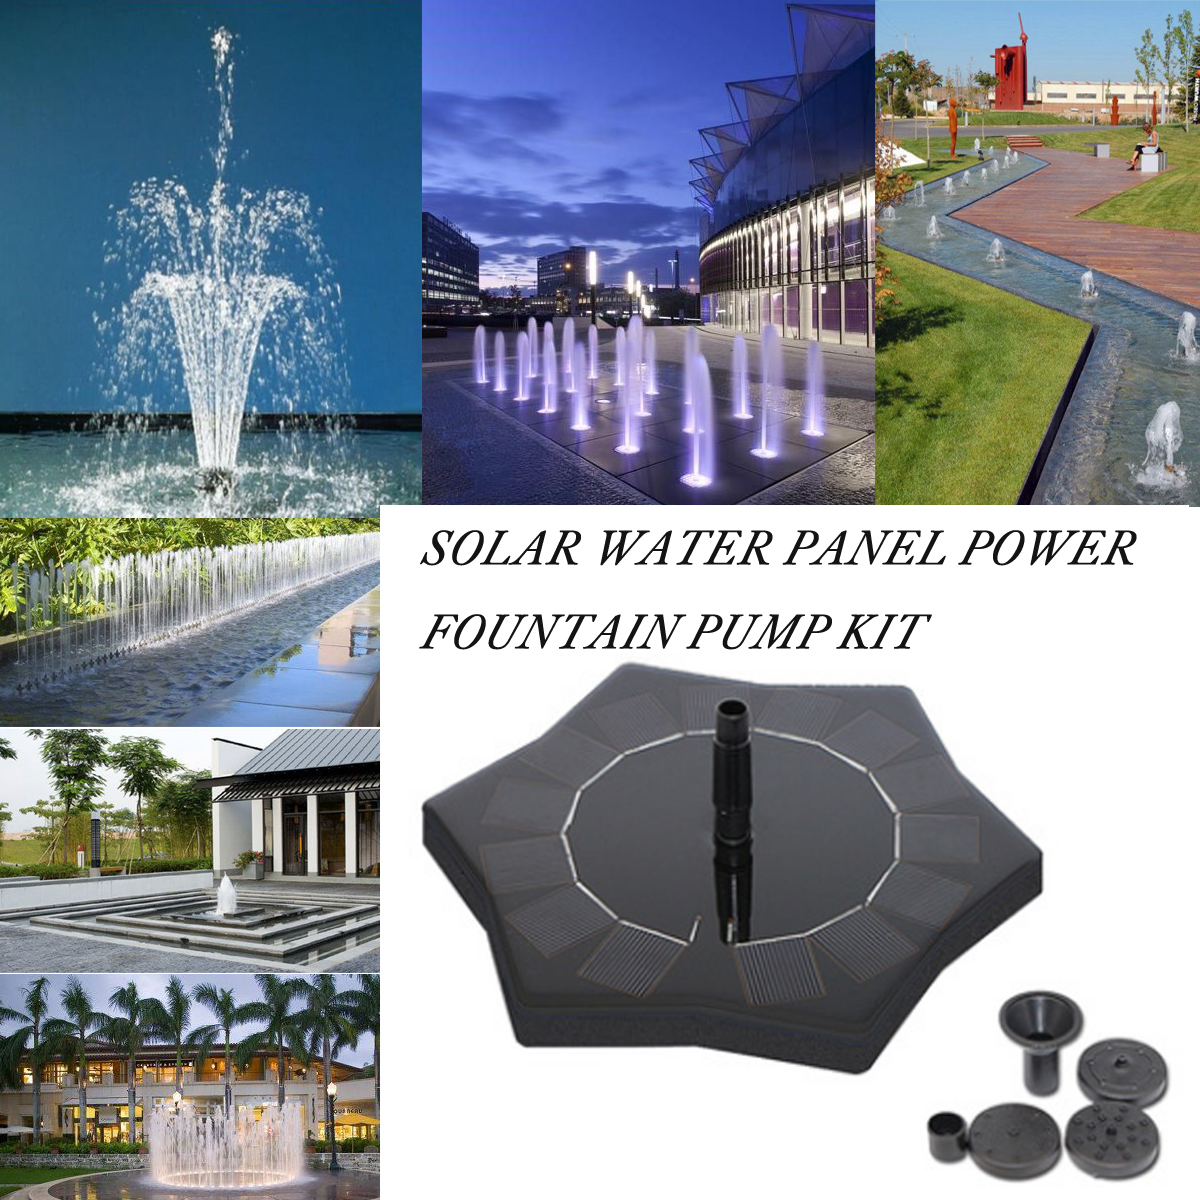 Solar Water Panel Power Fountain Pump Kit Garden Pool Aquarium Fountain Pond Tank Pump